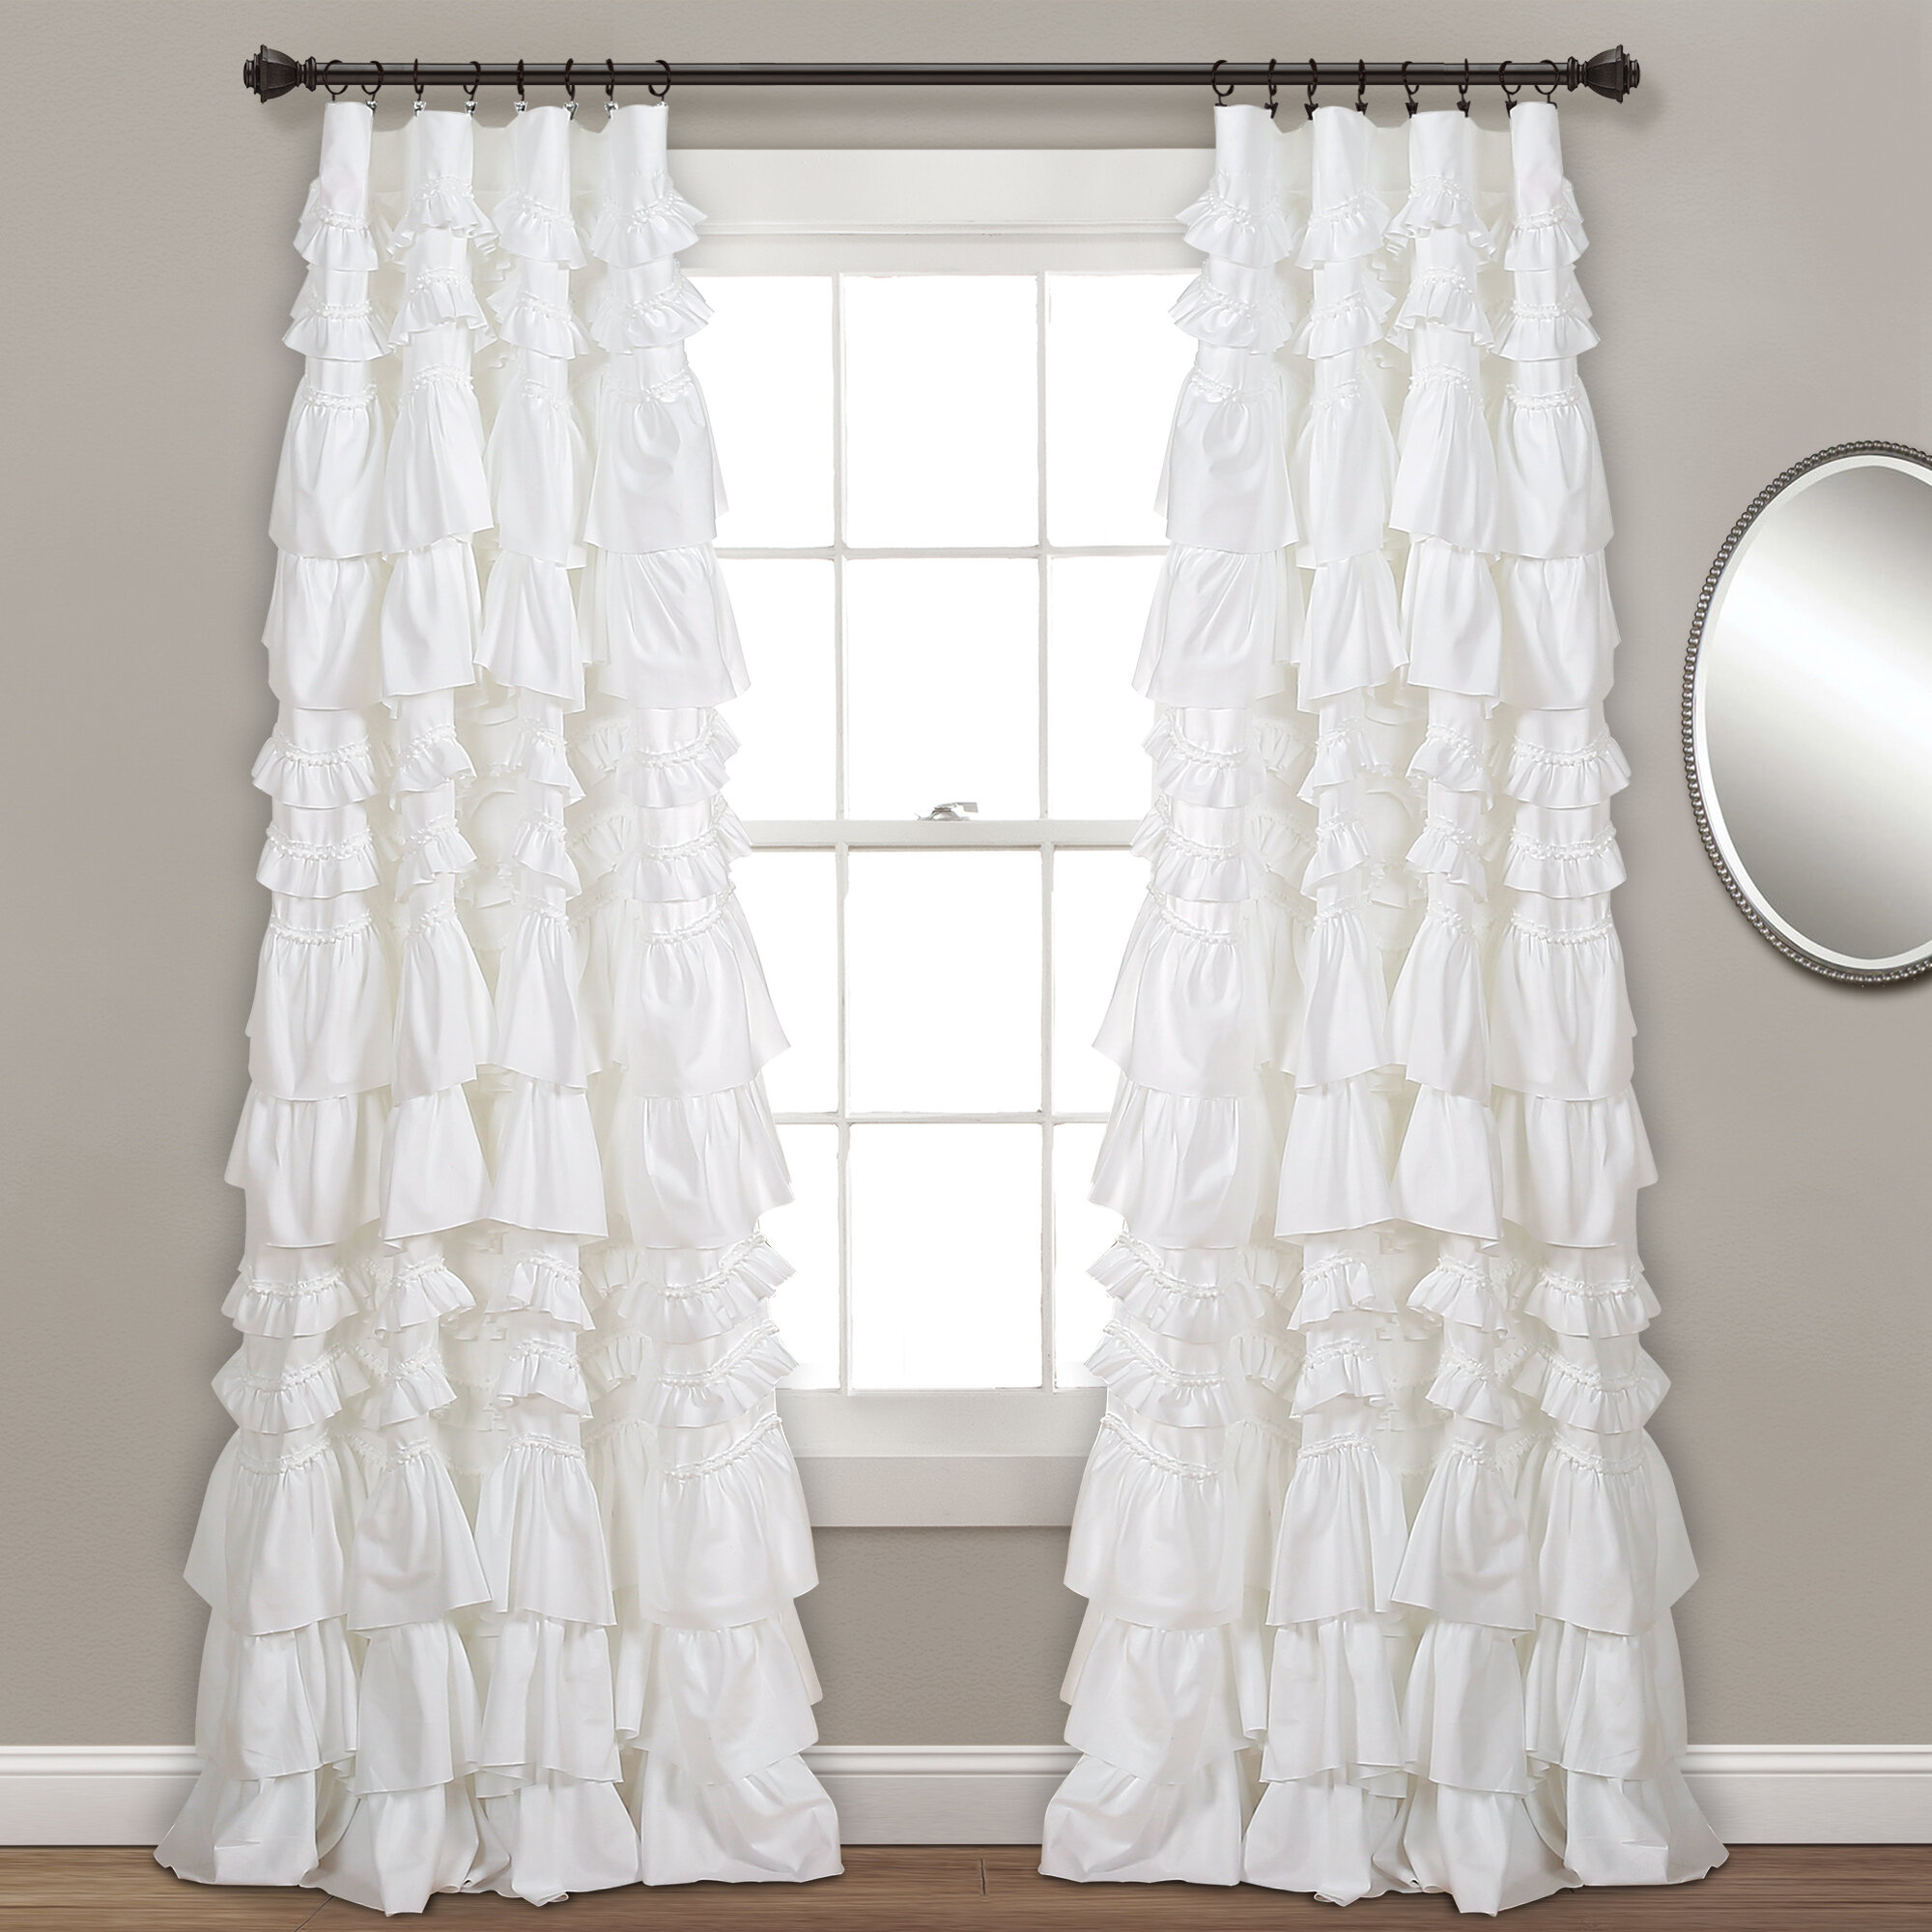 Lark Manor Bridlington Solid Semi Sheer Rod Pocket Single With Elegant Crushed Voile Ruffle Window Curtain Pieces (View 10 of 20)